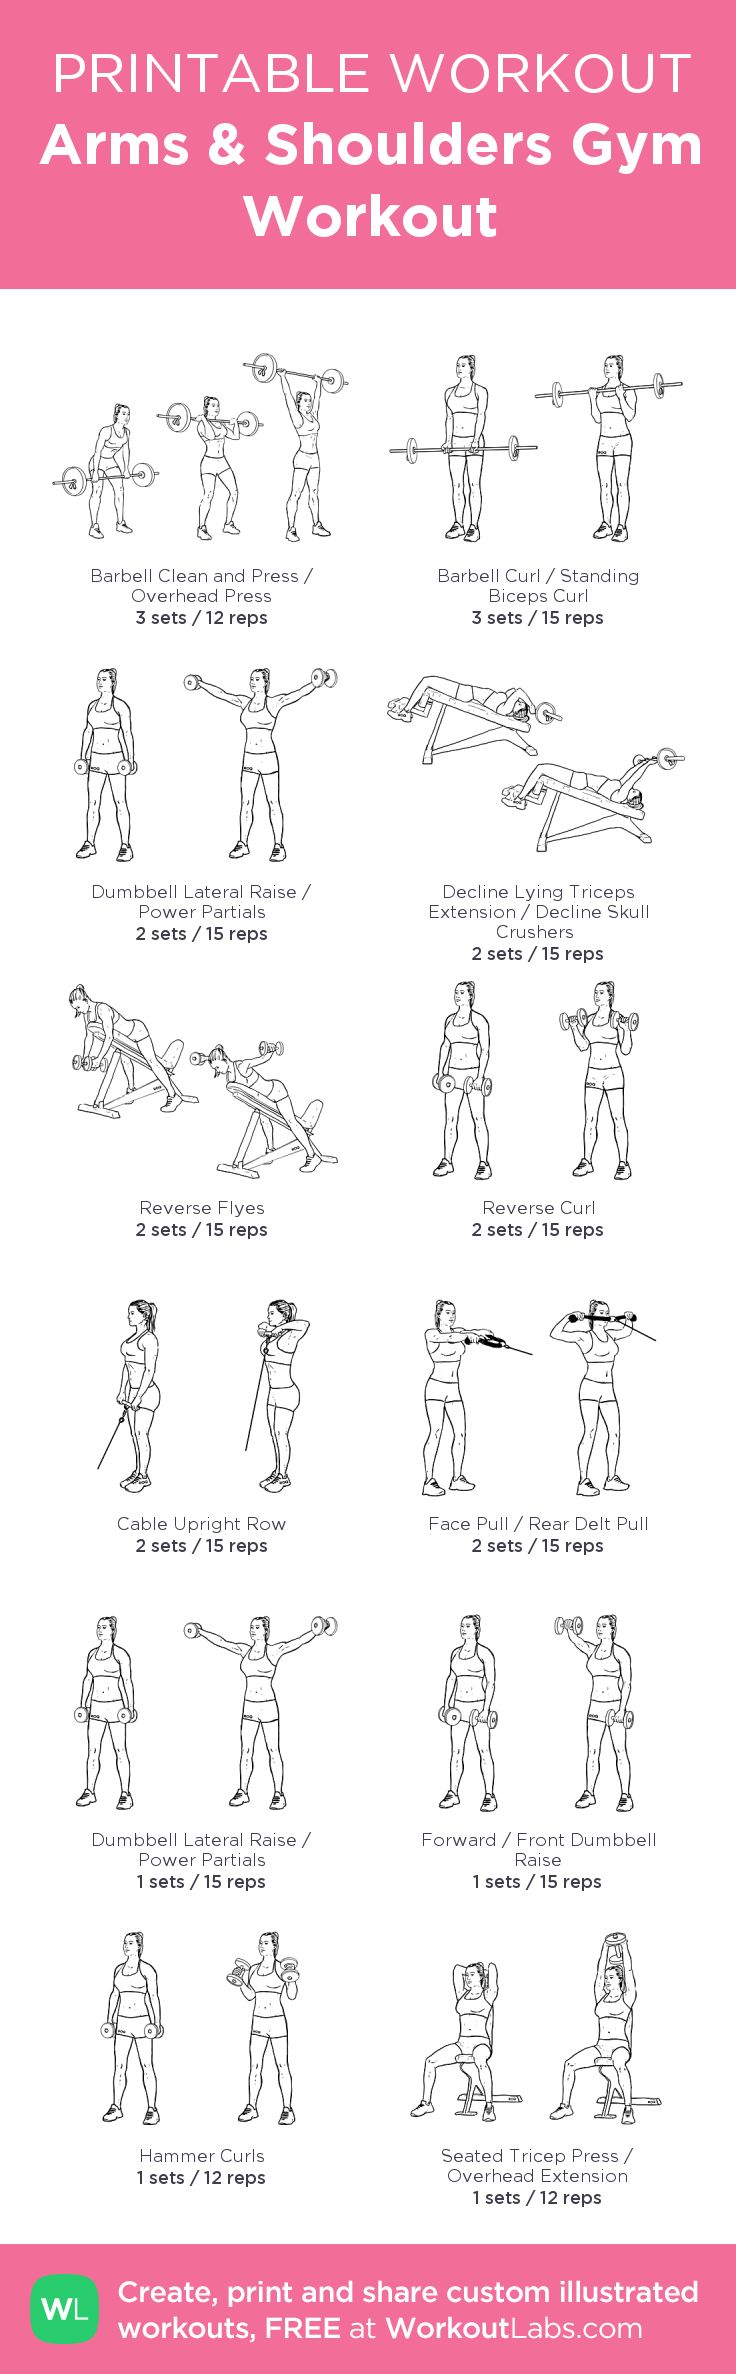 Arms & Shoulders Gym Workout:my visual workout created at WorkoutLabs.com • Click through to customize and download as a FREE PDF! #customworkout